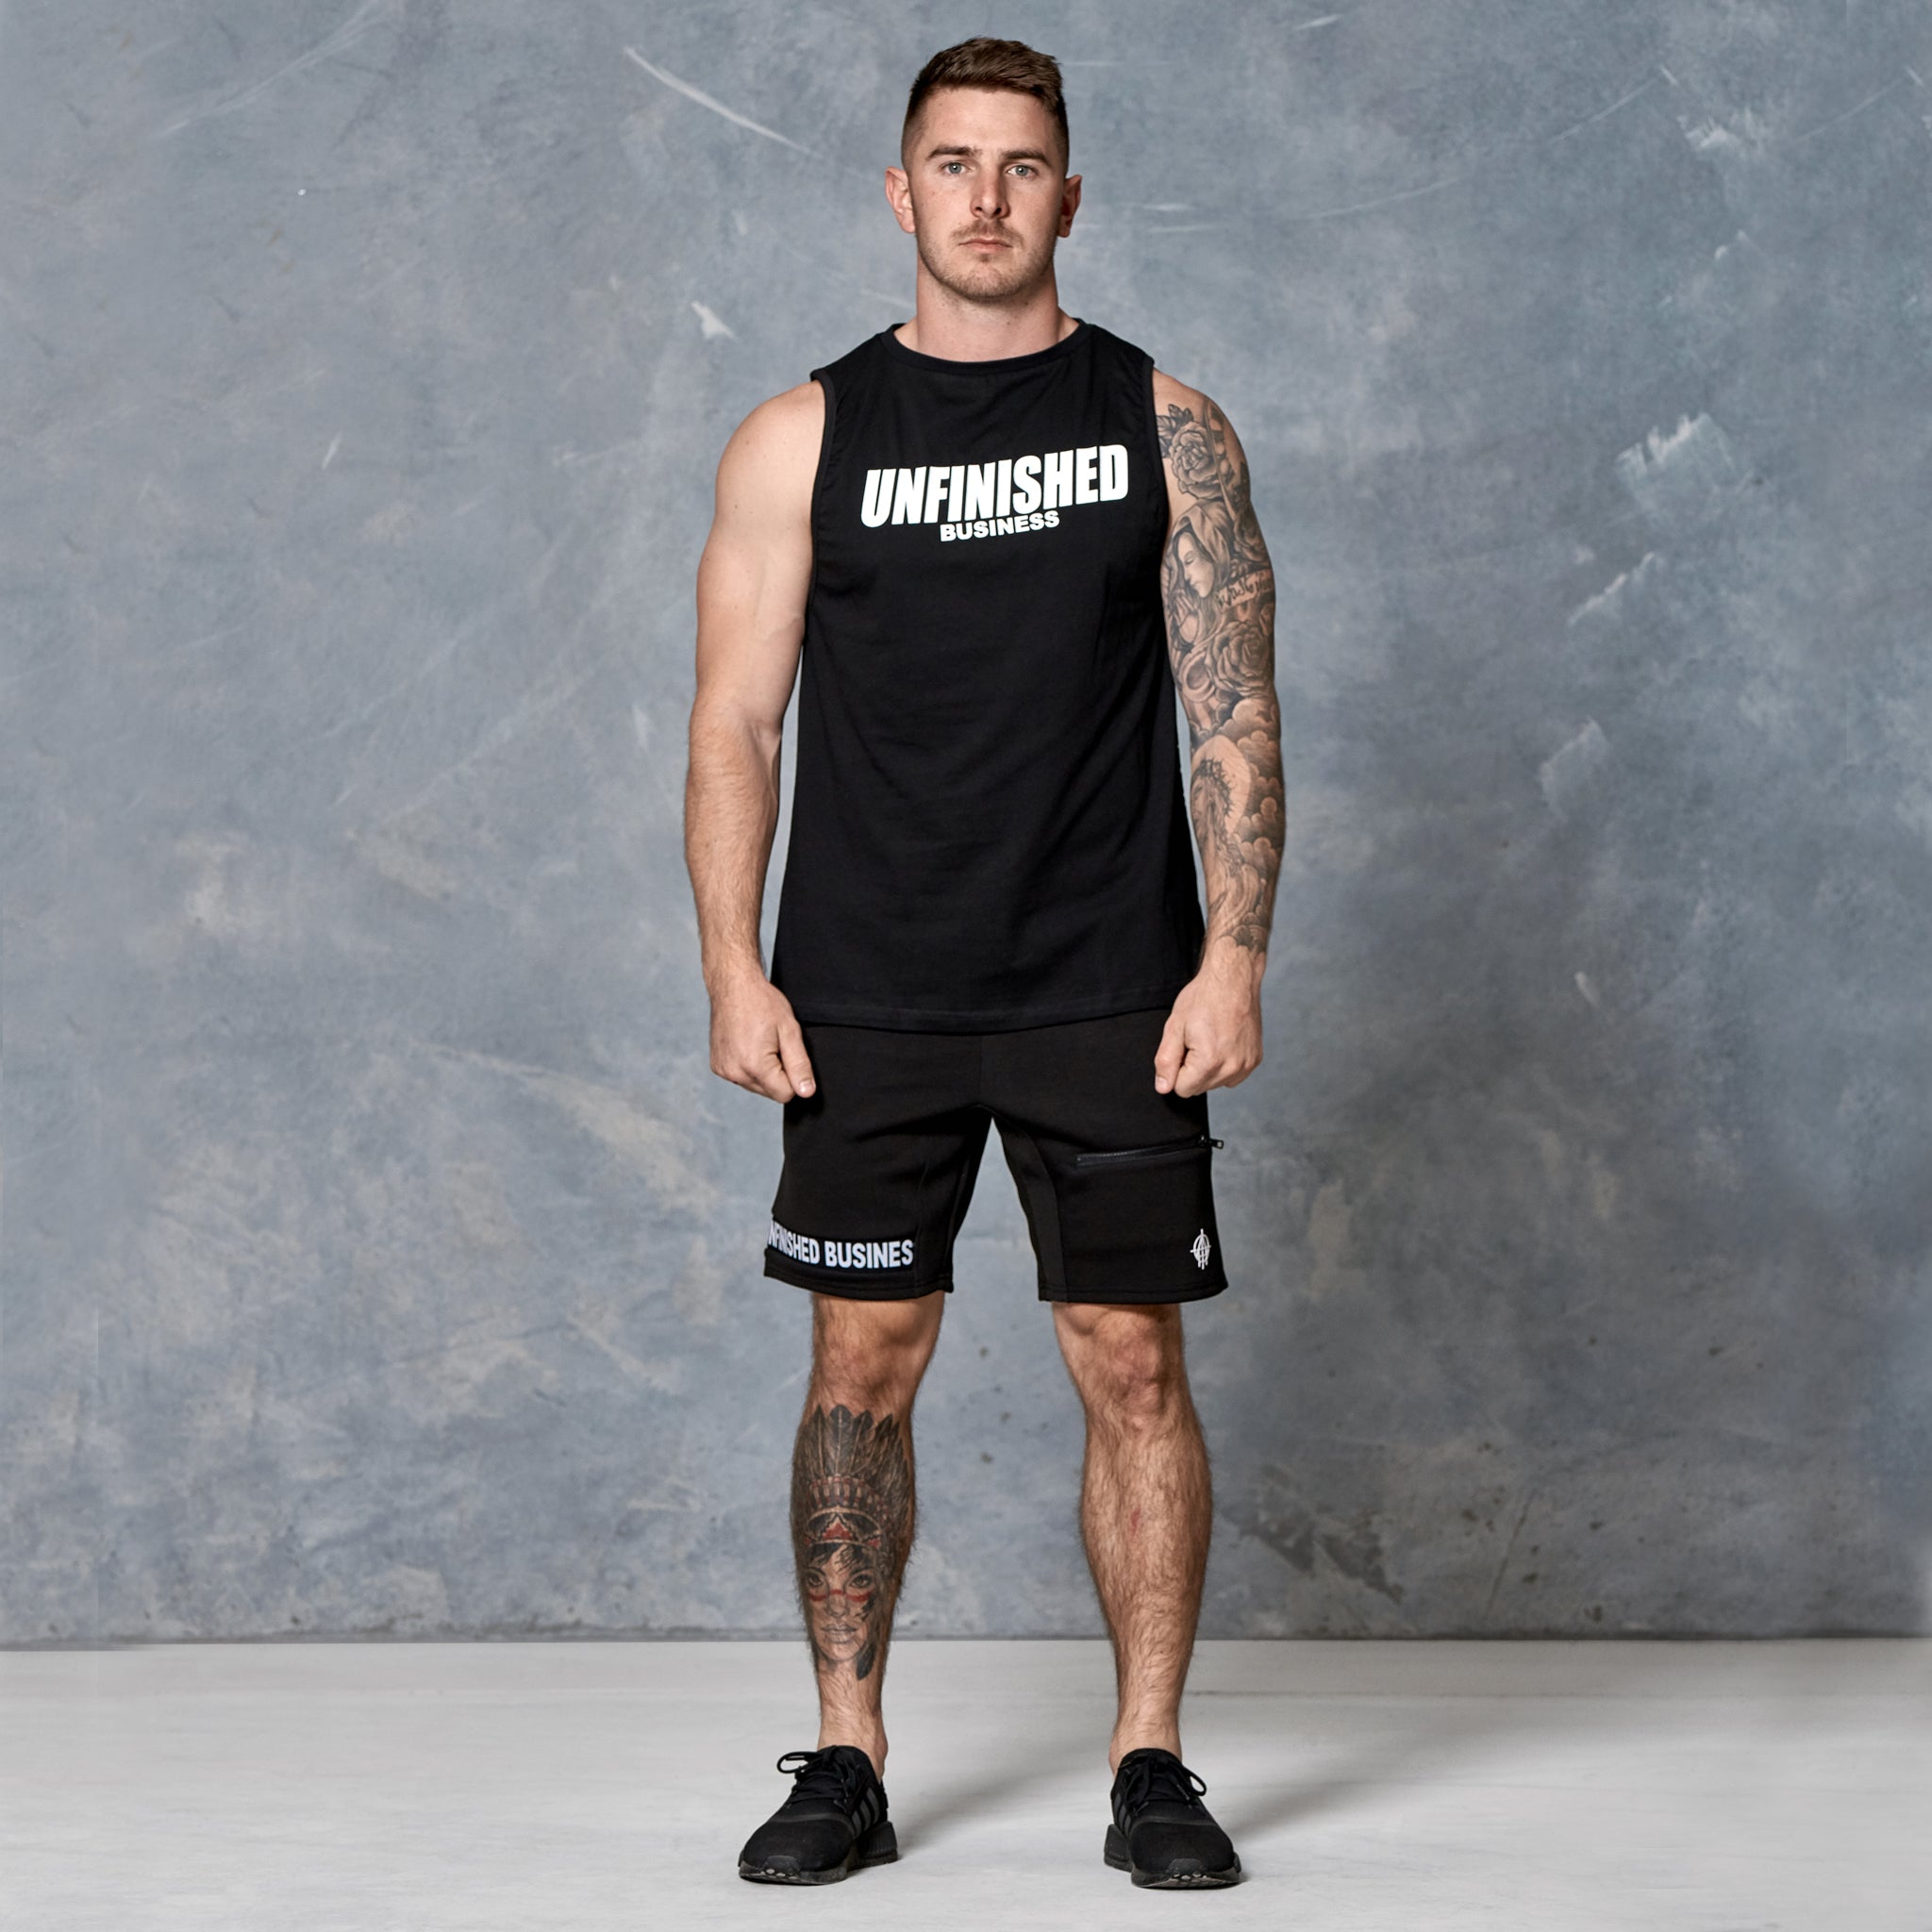 S2 Black Unfinished Business Muscle Tank